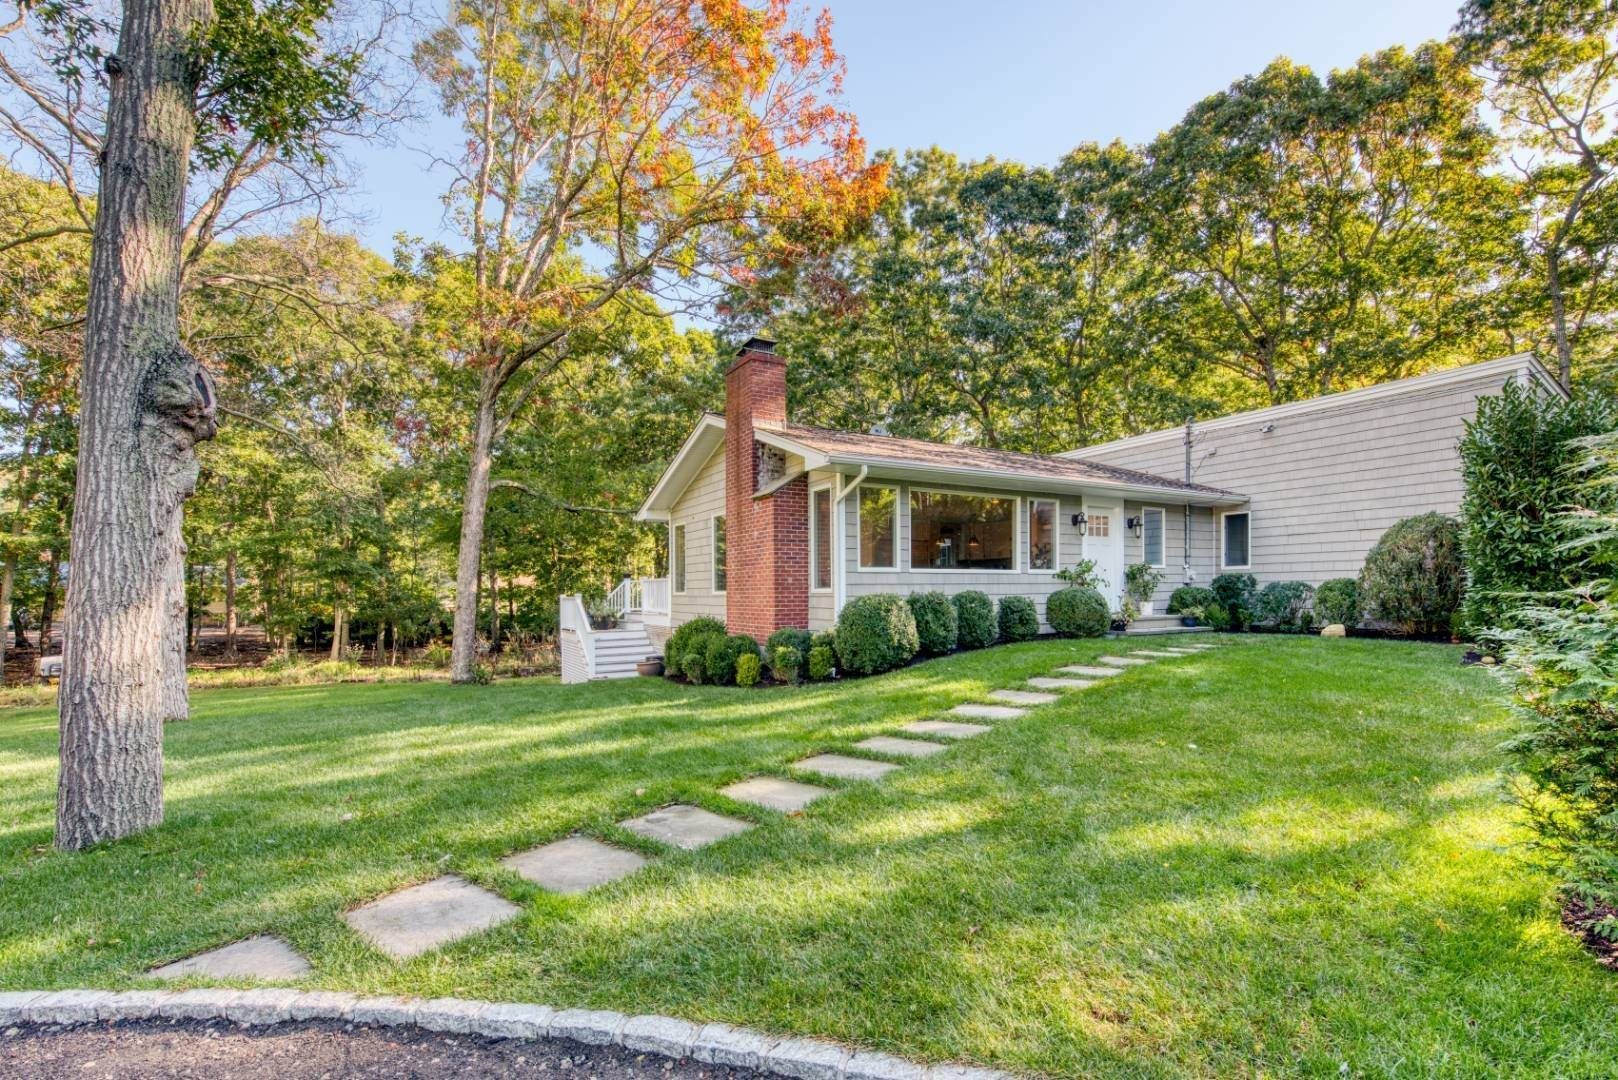 Single Family Home for Sale at Cool Cottage In Springs 129 Woodbine Dr, East Hampton, NY 11937